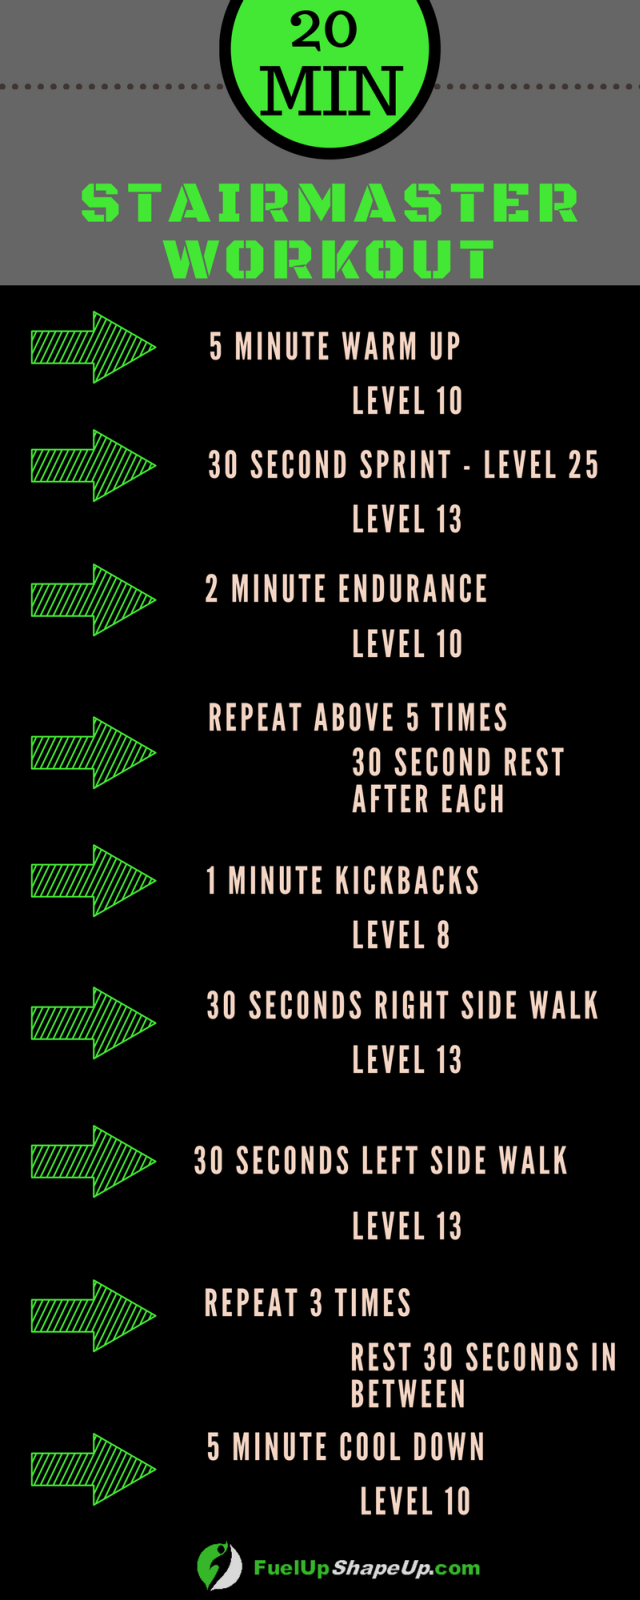 3 Benefits of a StairMaster Workout #stairmasterworkout 3 Benefits of a StairMaster Workout One of the most underrated yet effective exercises for a great butt is a StairMaster Workout! Check out the 20 minute calorie burner! #stairmasterworkout 3 Benefits of a StairMaster Workout #stairmasterworkout 3 Benefits of a StairMaster Workout One of the most underrated yet effective exercises for a great butt is a StairMaster Workout! Check out the 20 minute calorie burner! #stairmasterworkout 3 Benefi #stairmasterworkout